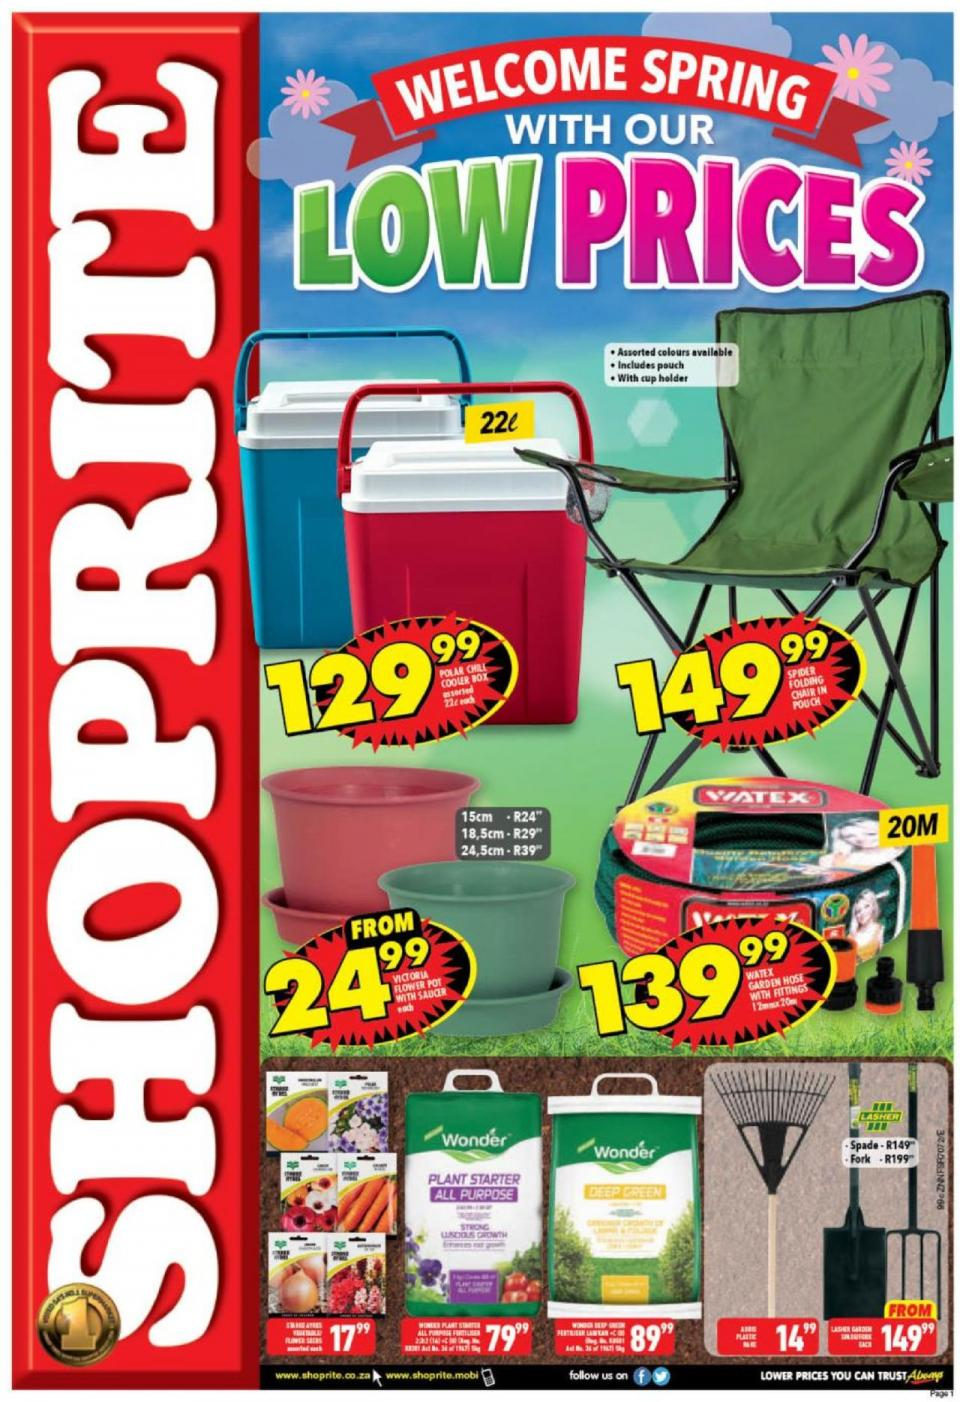 shoprite specials spring promotion 30 september 2019 kwazulu natal